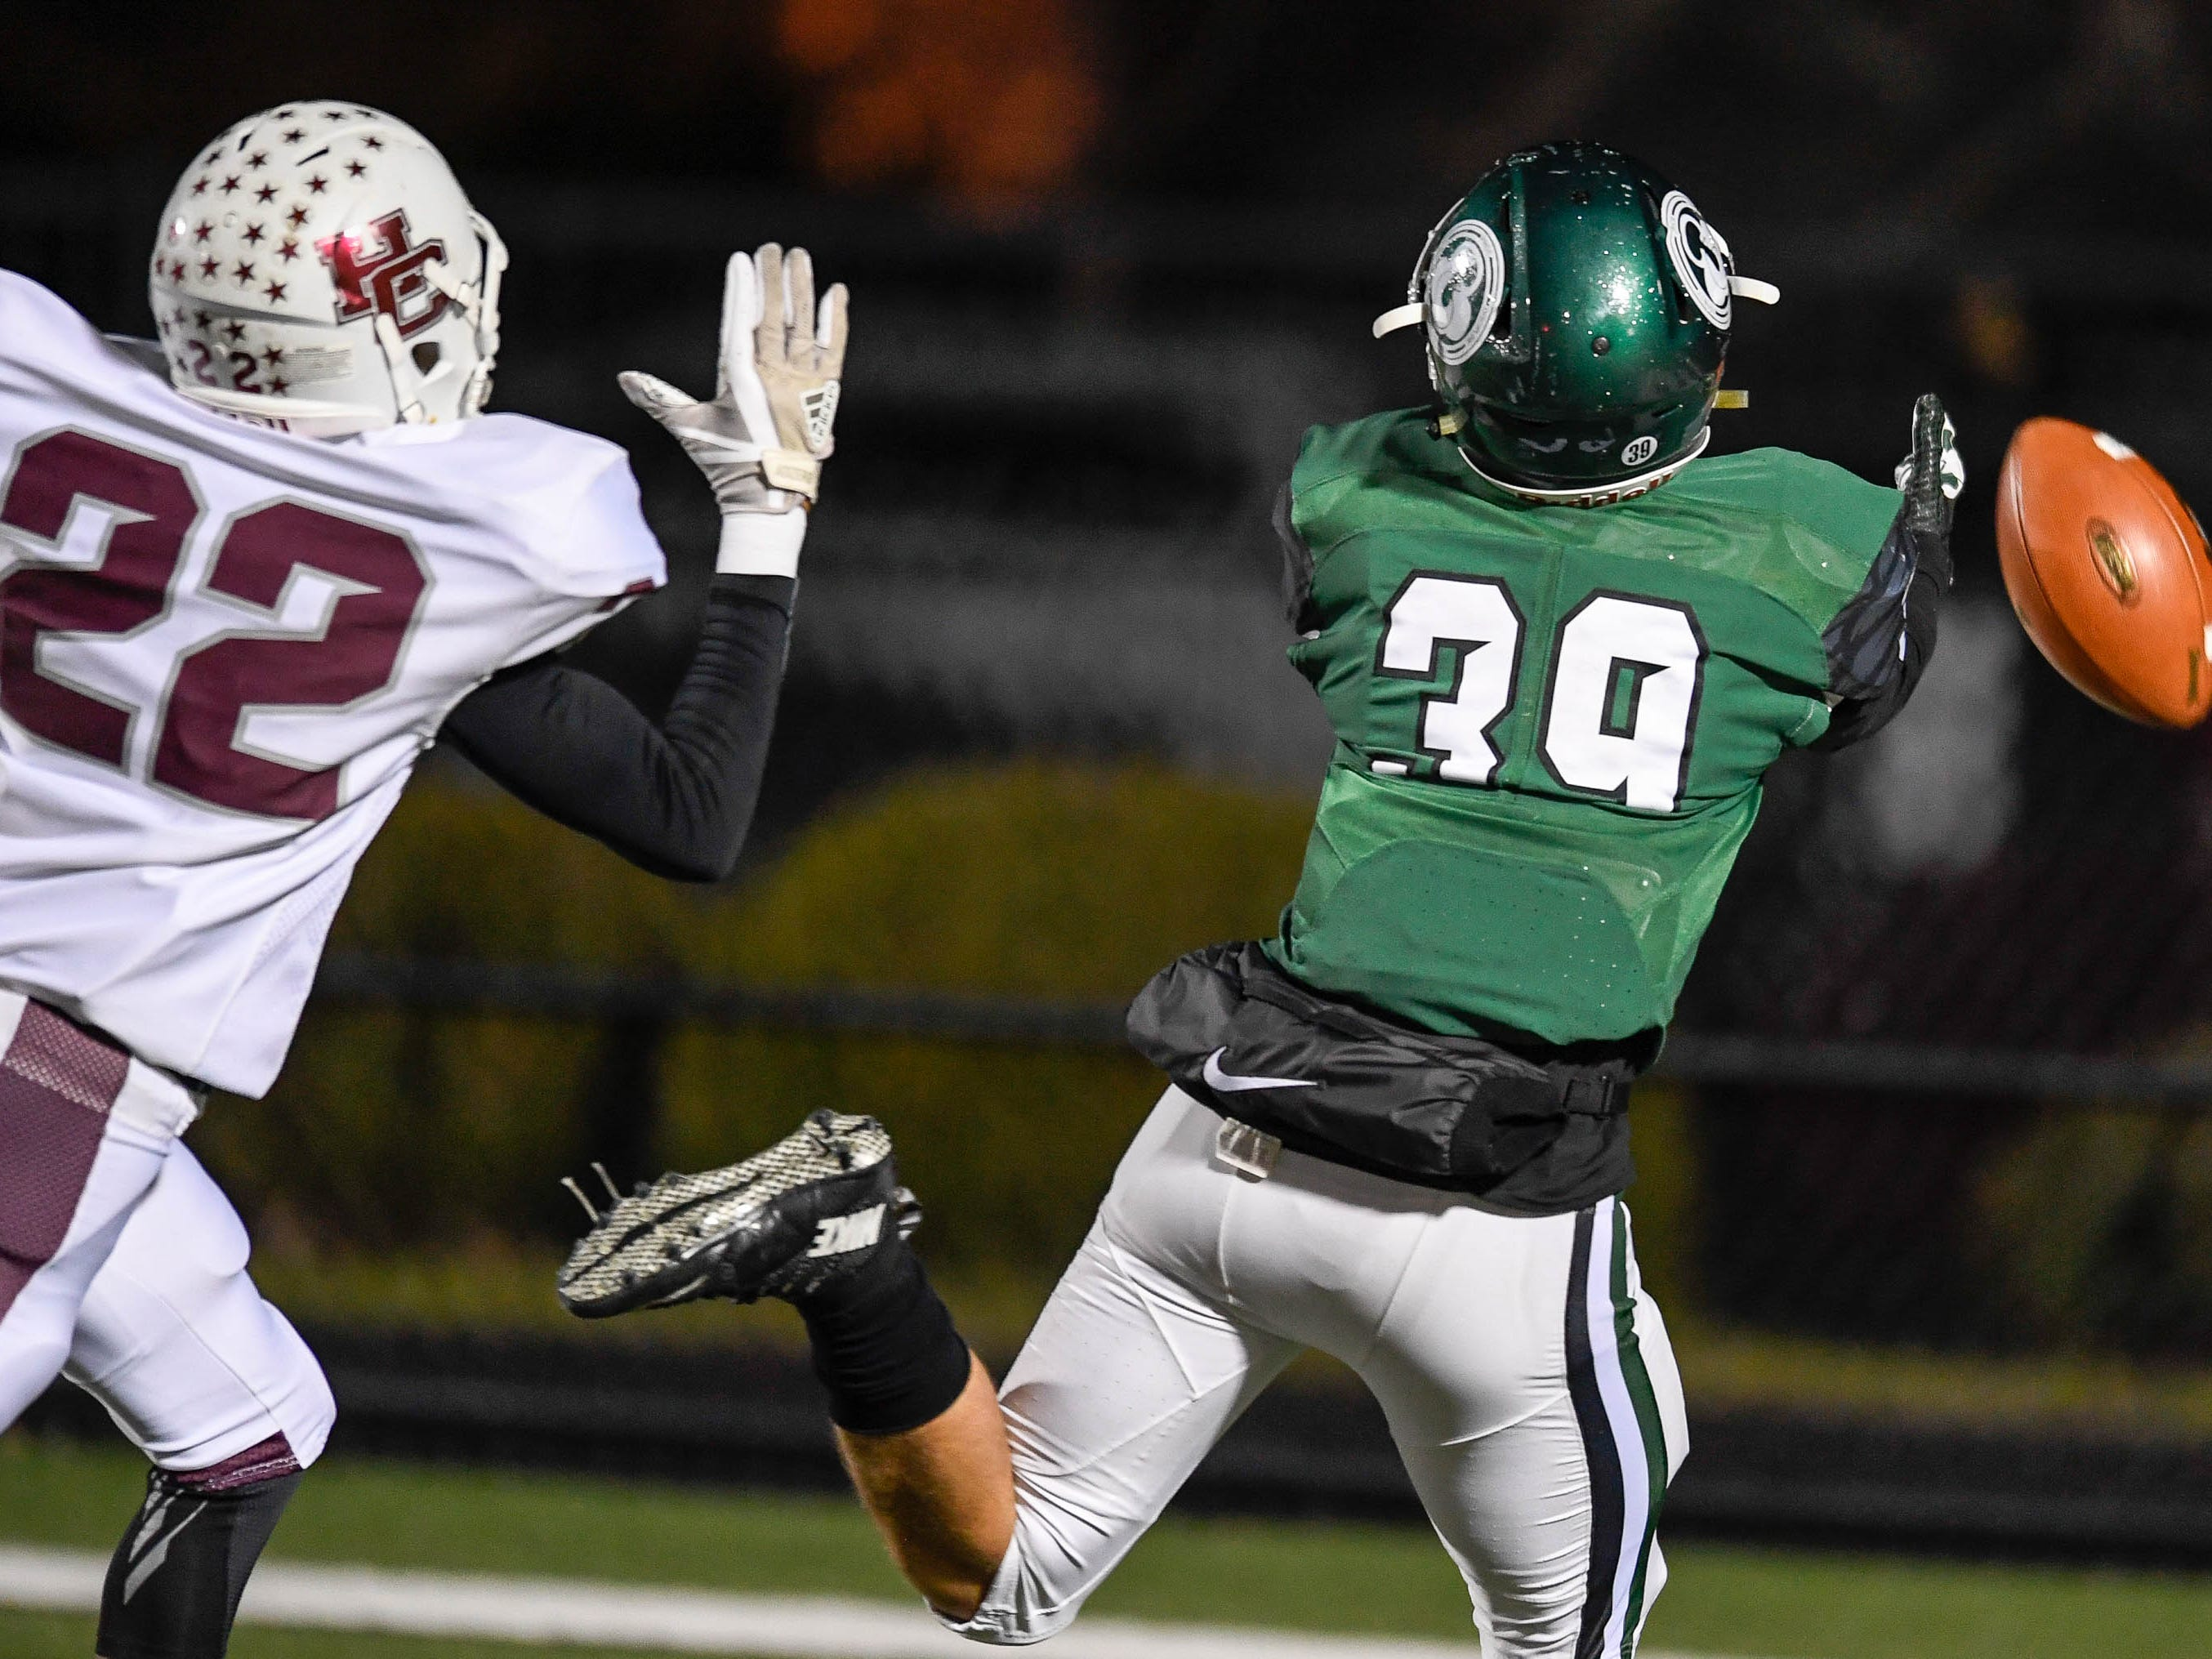 An incomplete pass to Trinity's Ryan Miller (39 under pressure from Henderson's Edmund Brooks (22) )as the Henderson County Colonels play the Trinity Shamrocks in the second round of the Class 6-A football playoffs at Marshall Stadium in Louisville Friday, November 9, 2018.